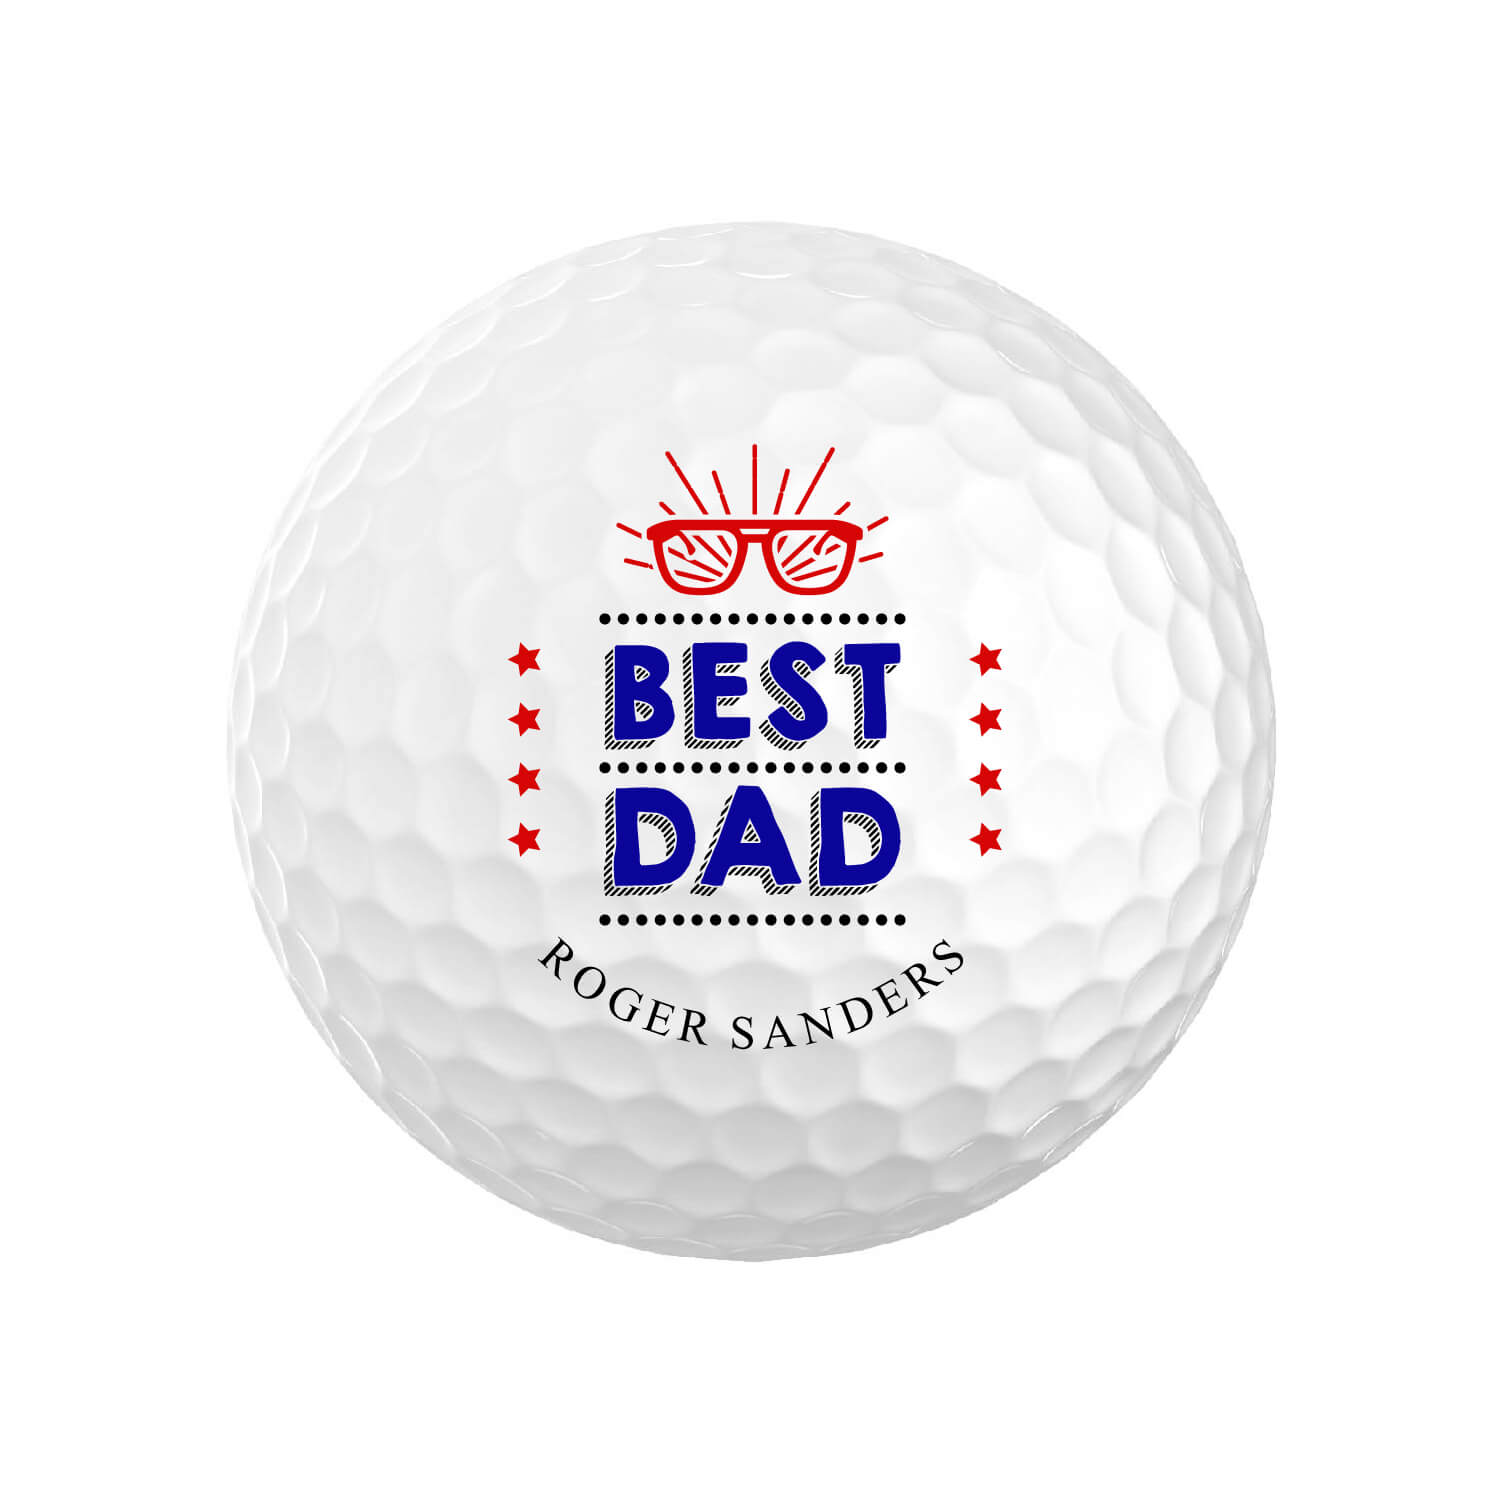 Personalized Best Dad Golf Balls